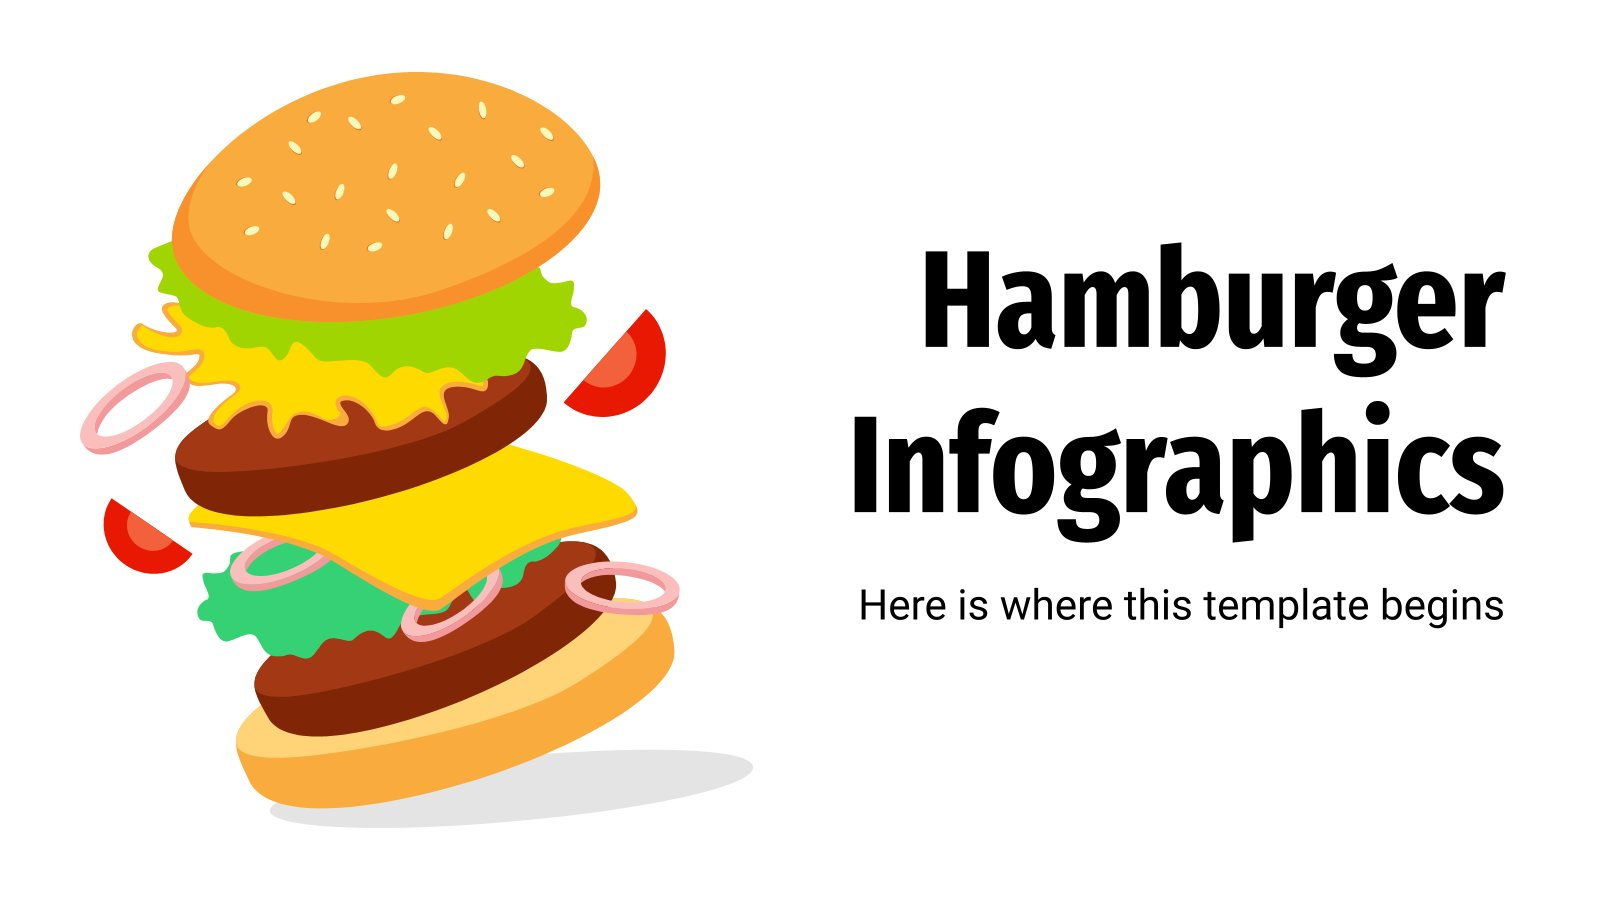 Hamburger Infographics presentation template